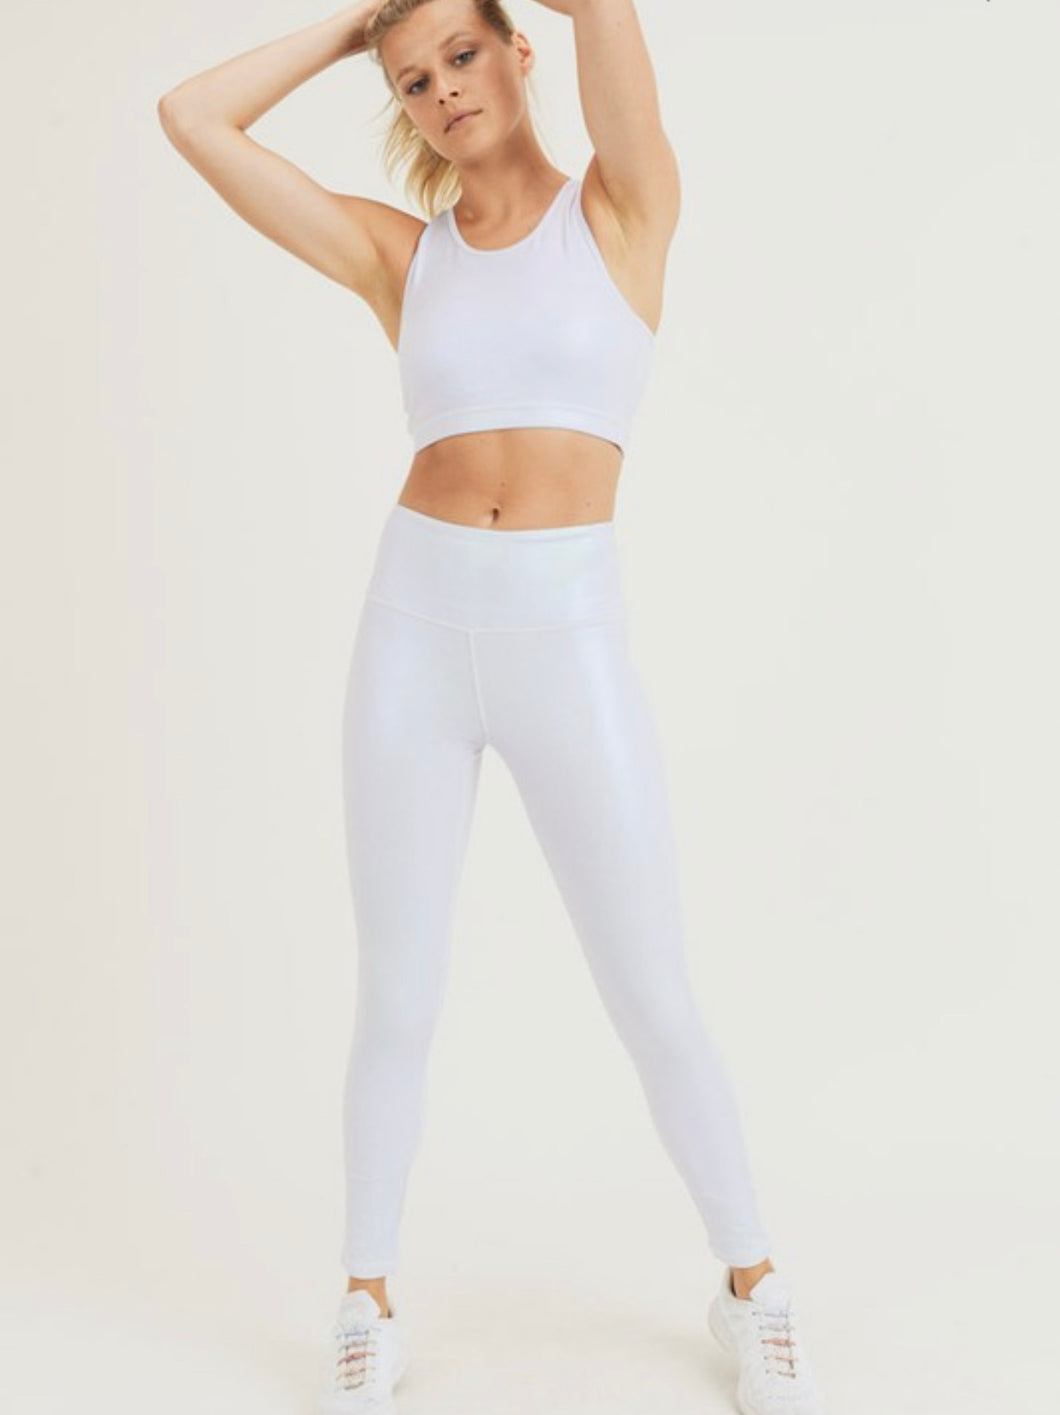 Pearlescent Foil Leggings